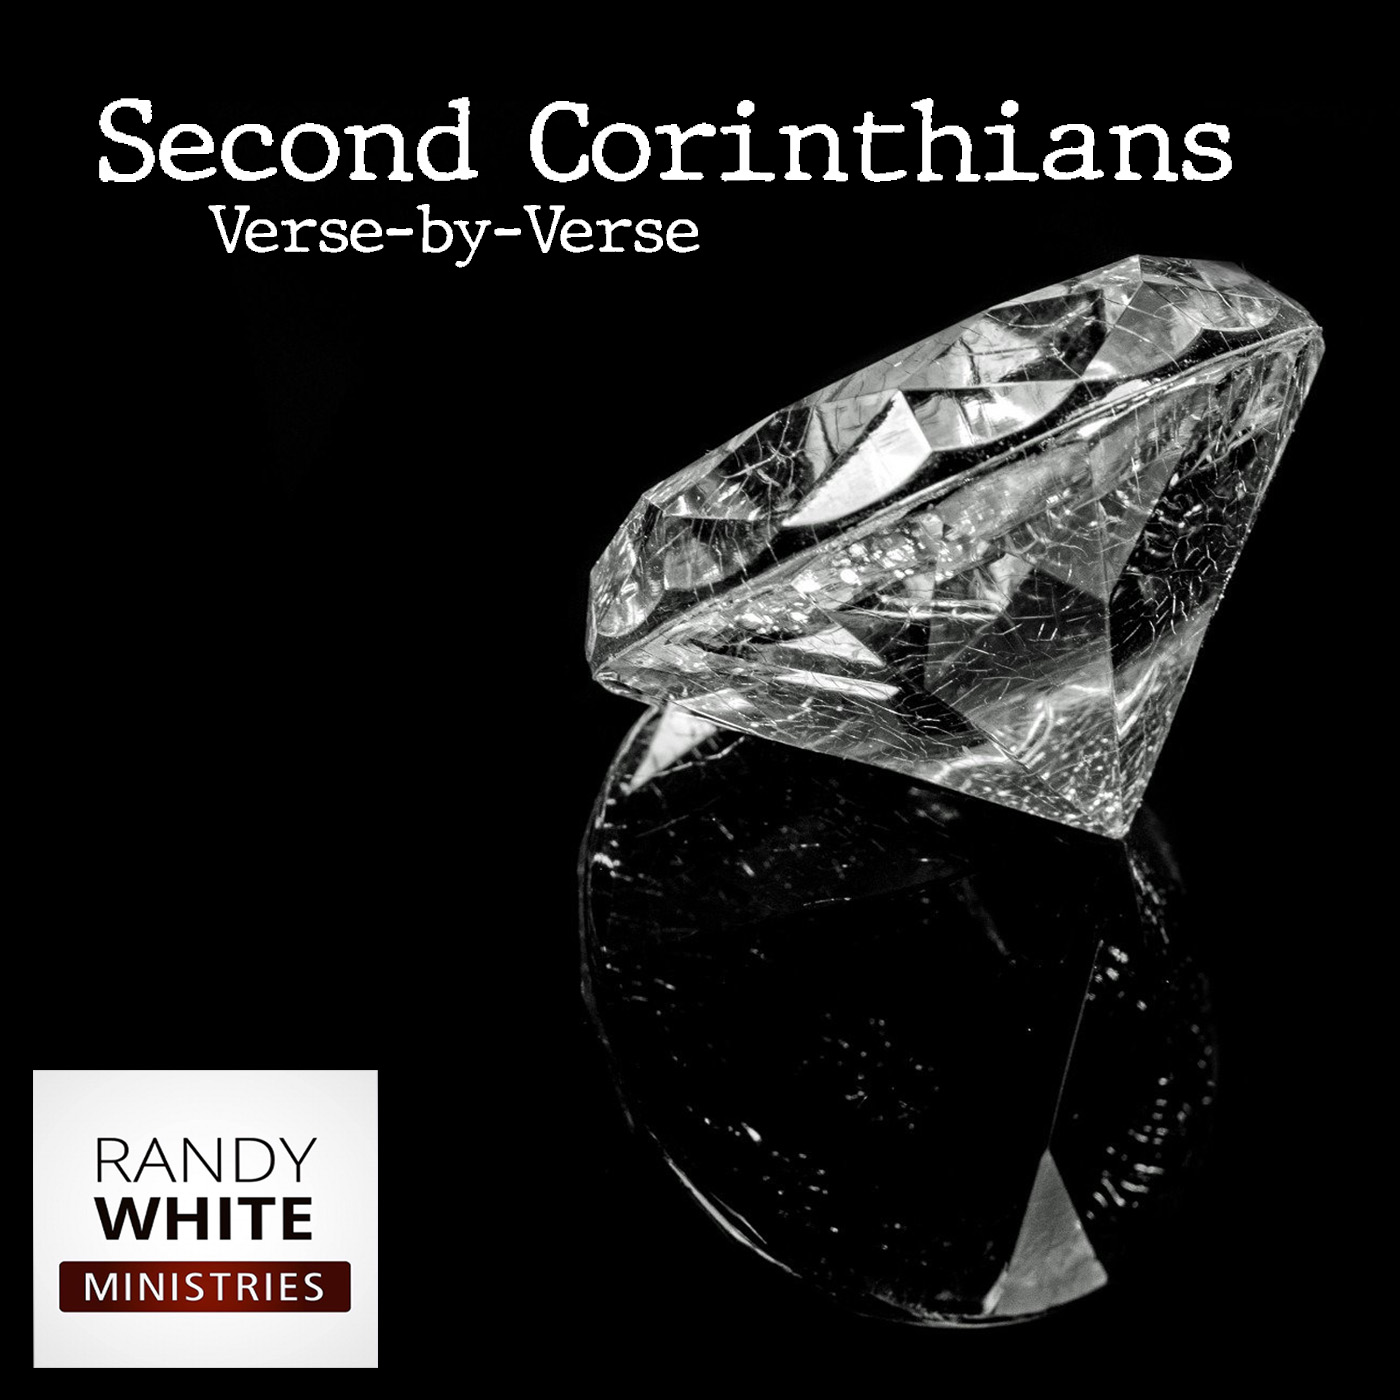 RWM: Second Corinthians Verse-by-Verse